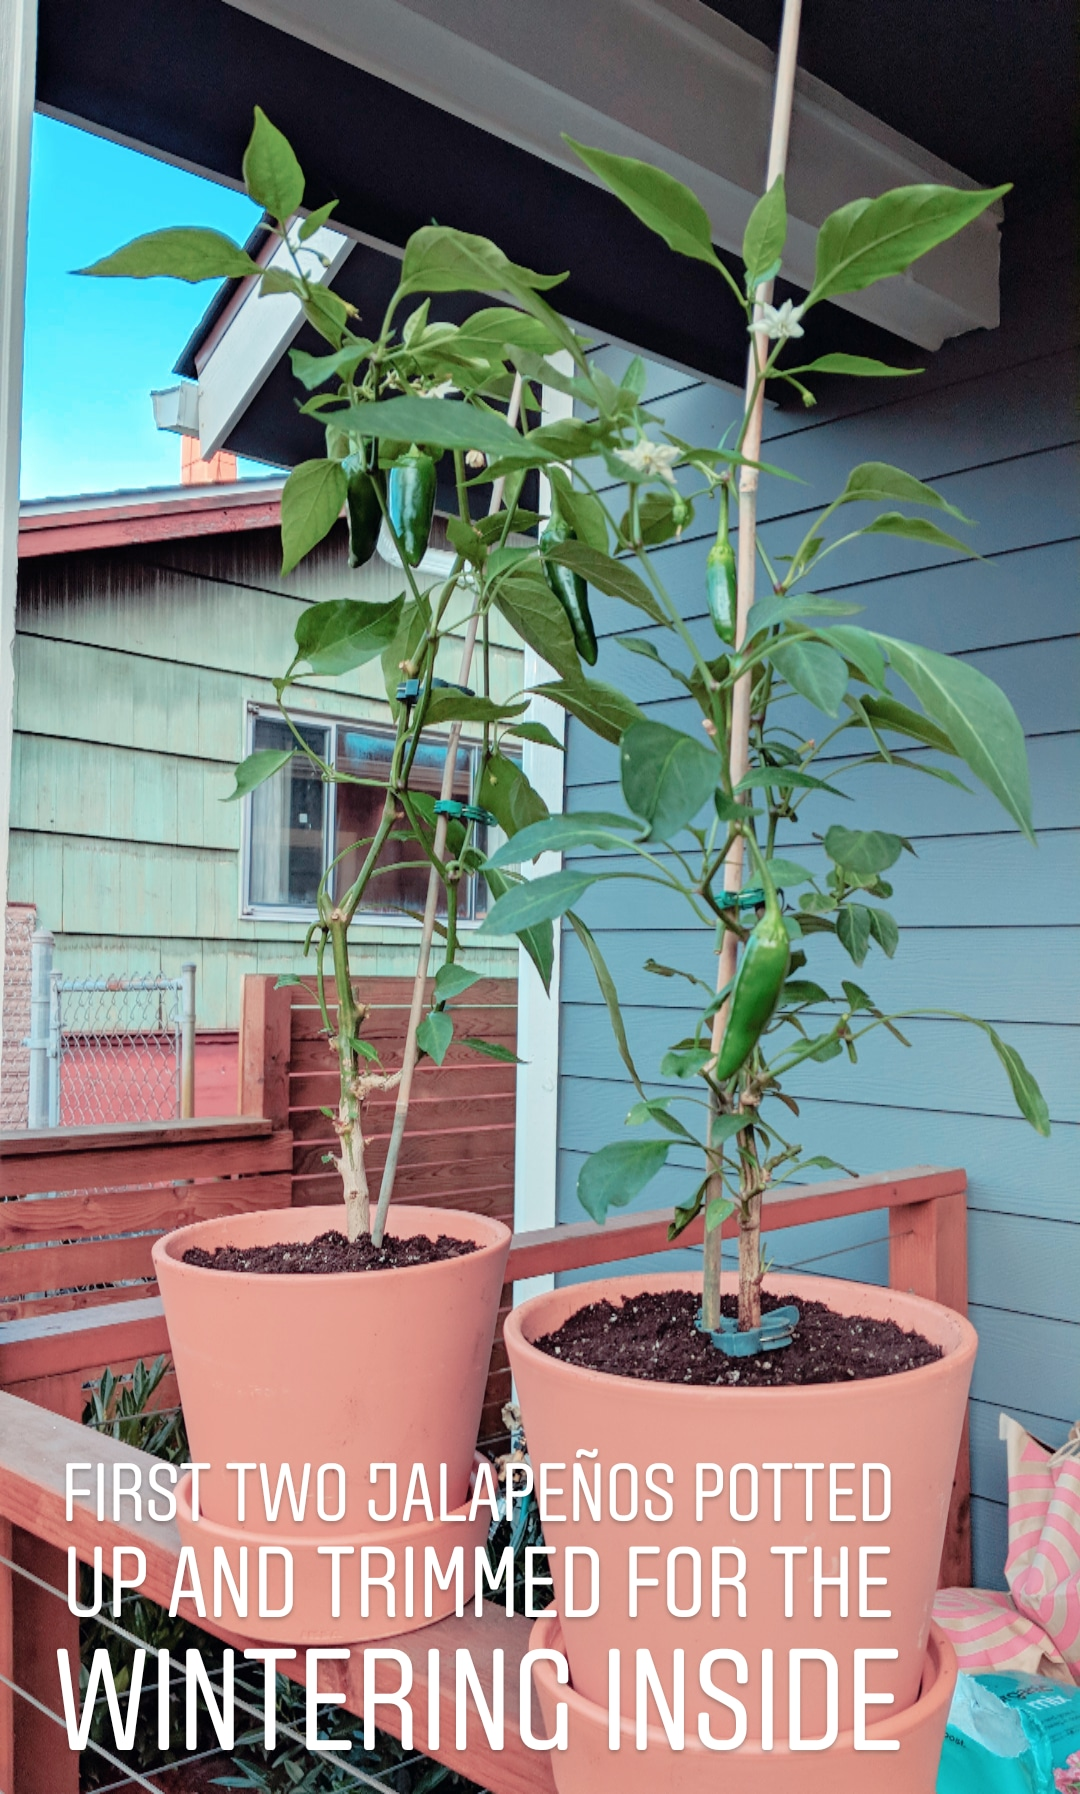 First two jalapenos potted up and trimmed for wintering inside